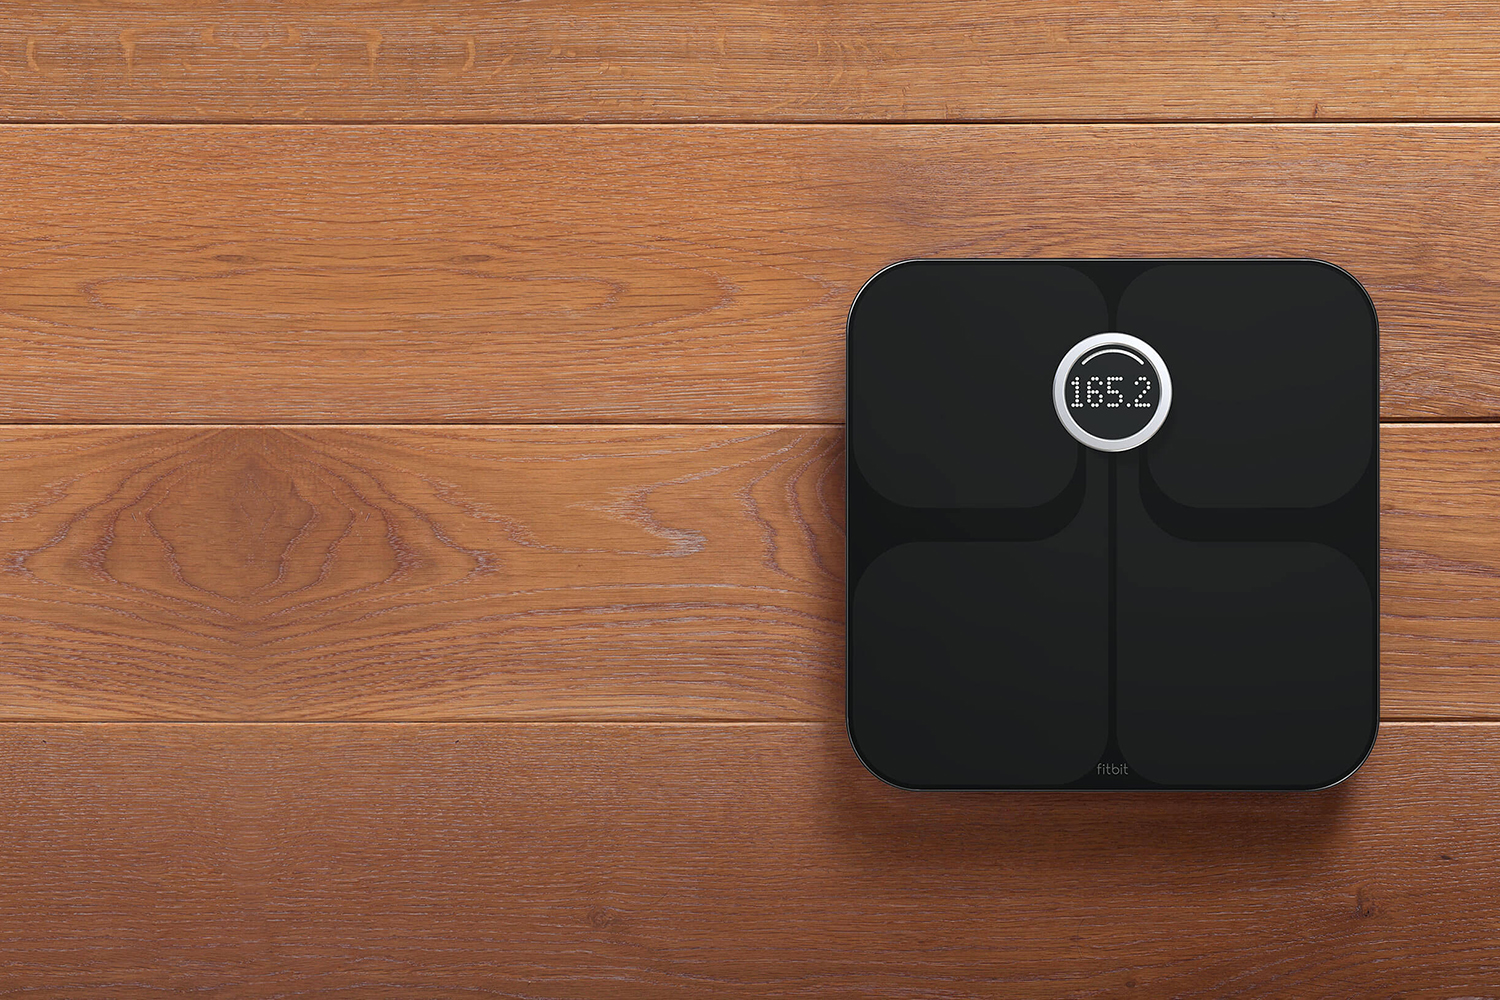 Bathroom scales best rated - Fitbit Aria